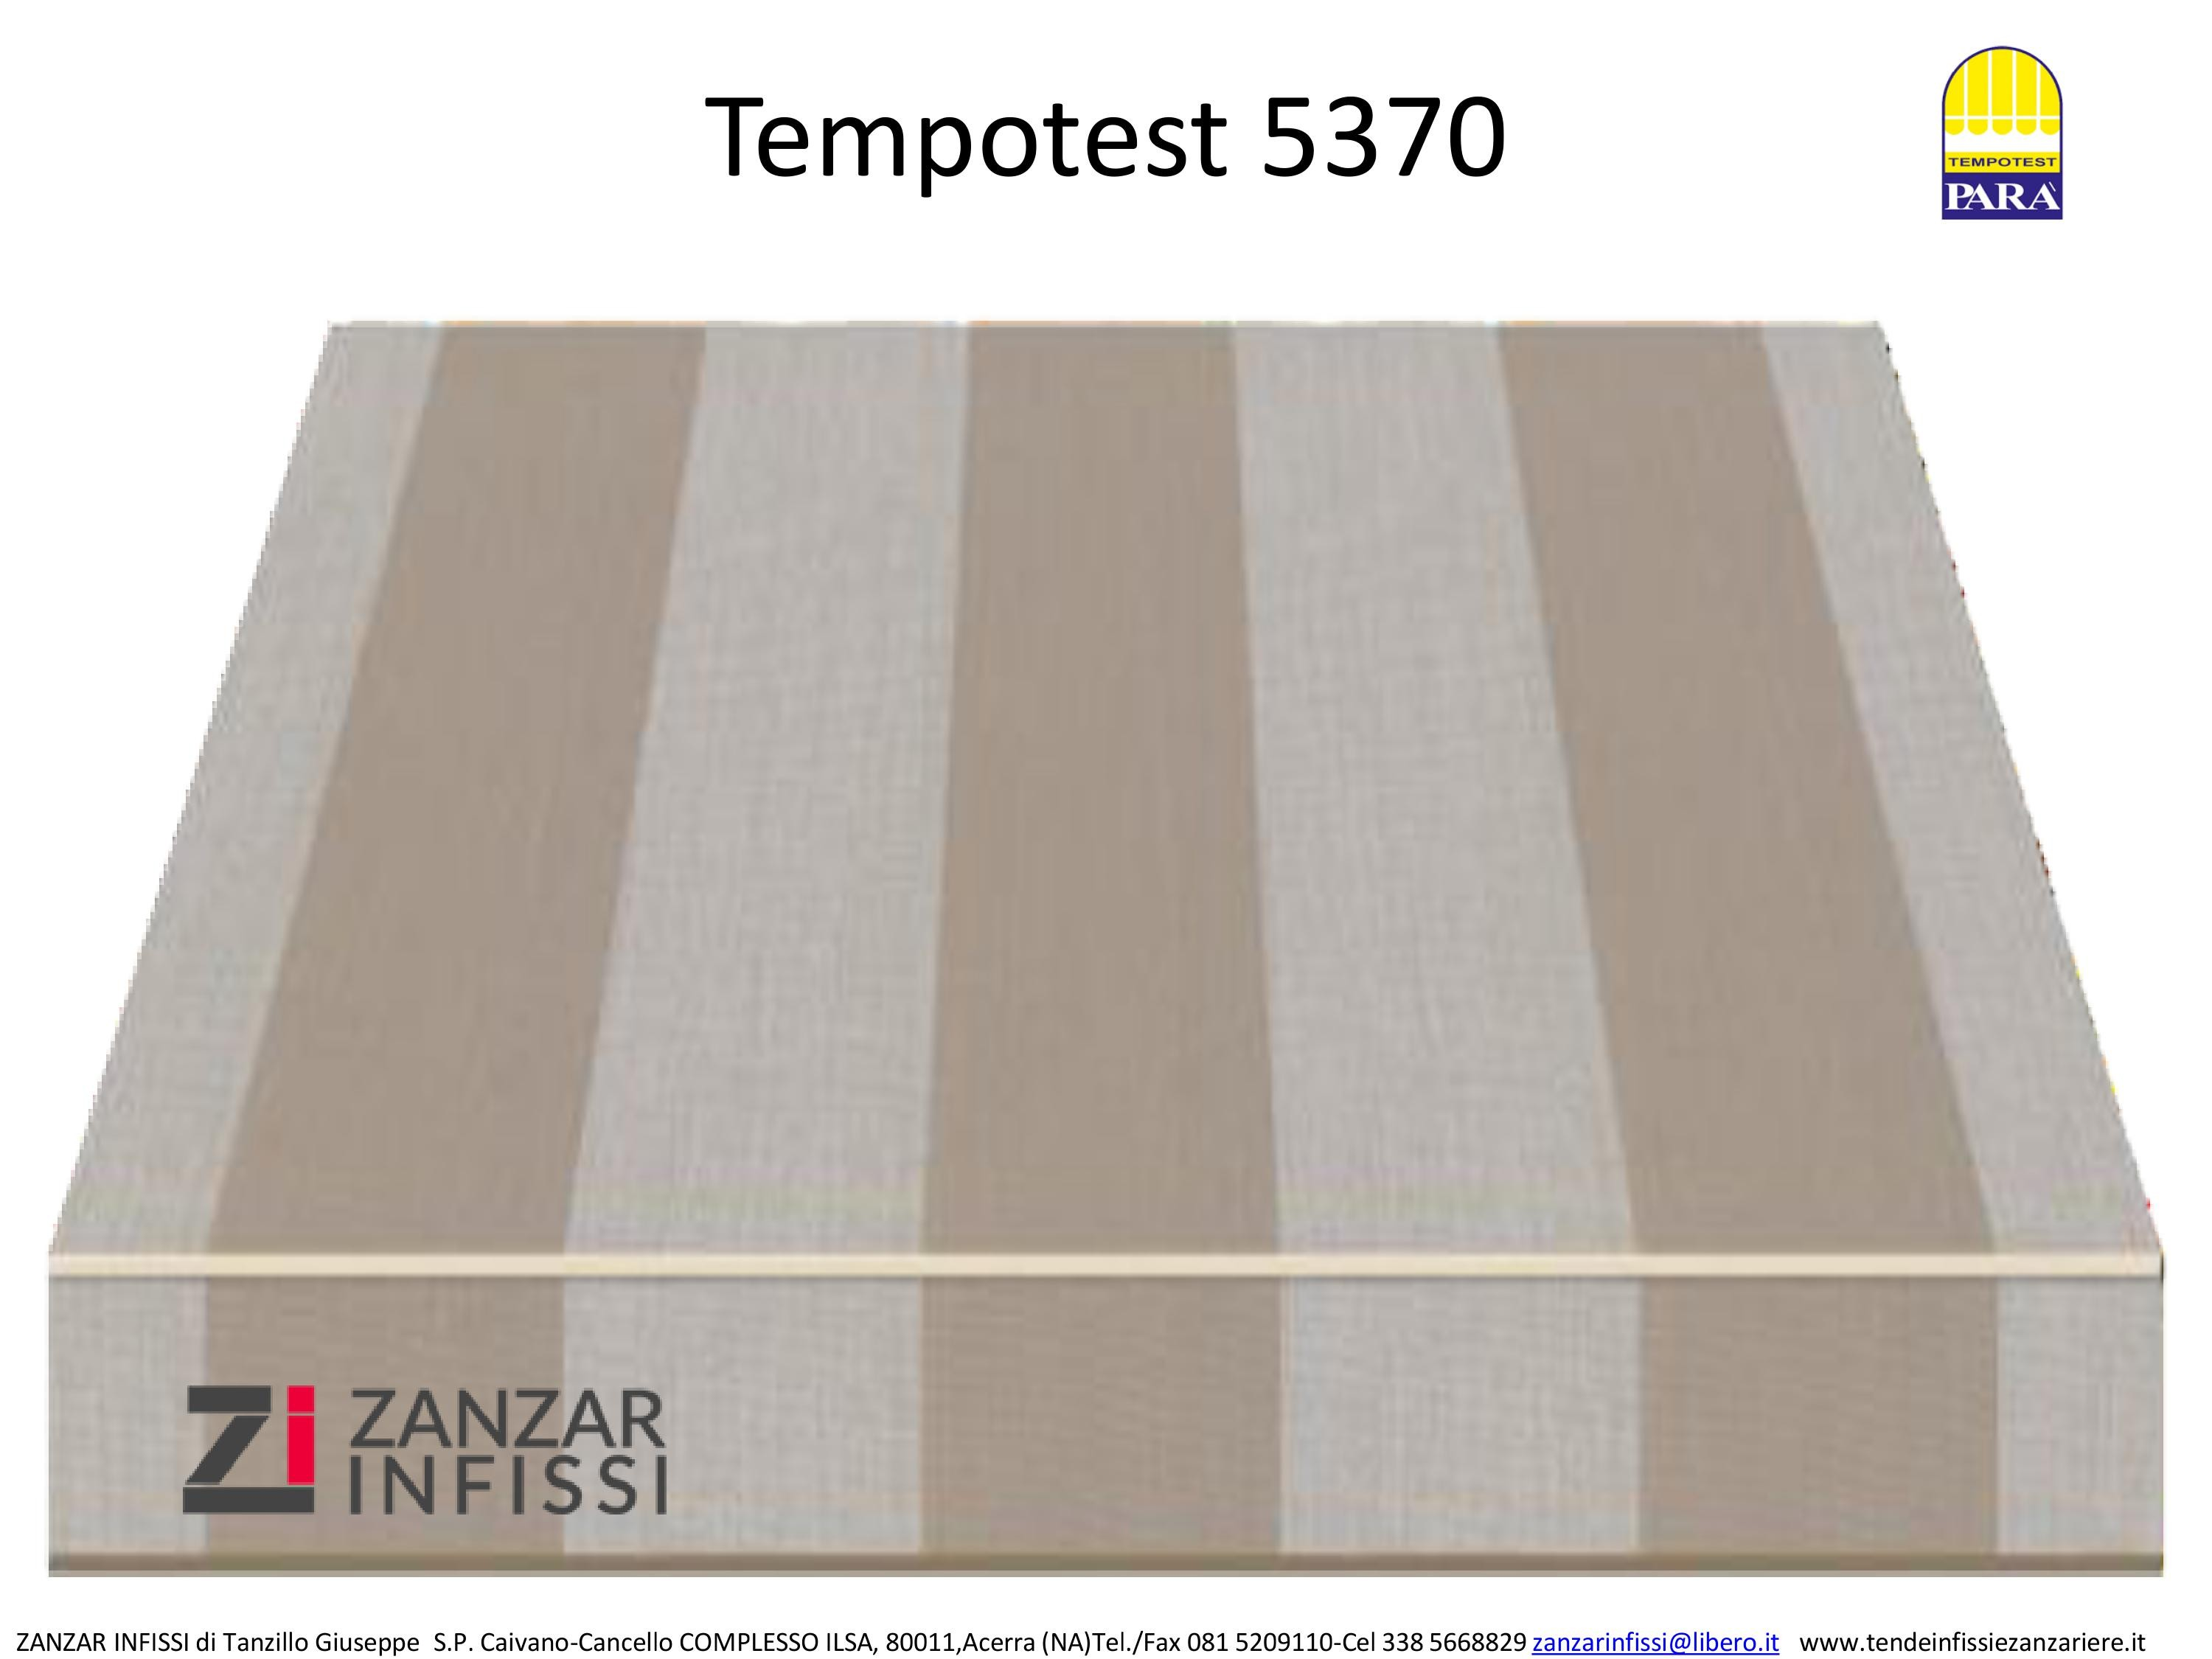 Tempotest 5370